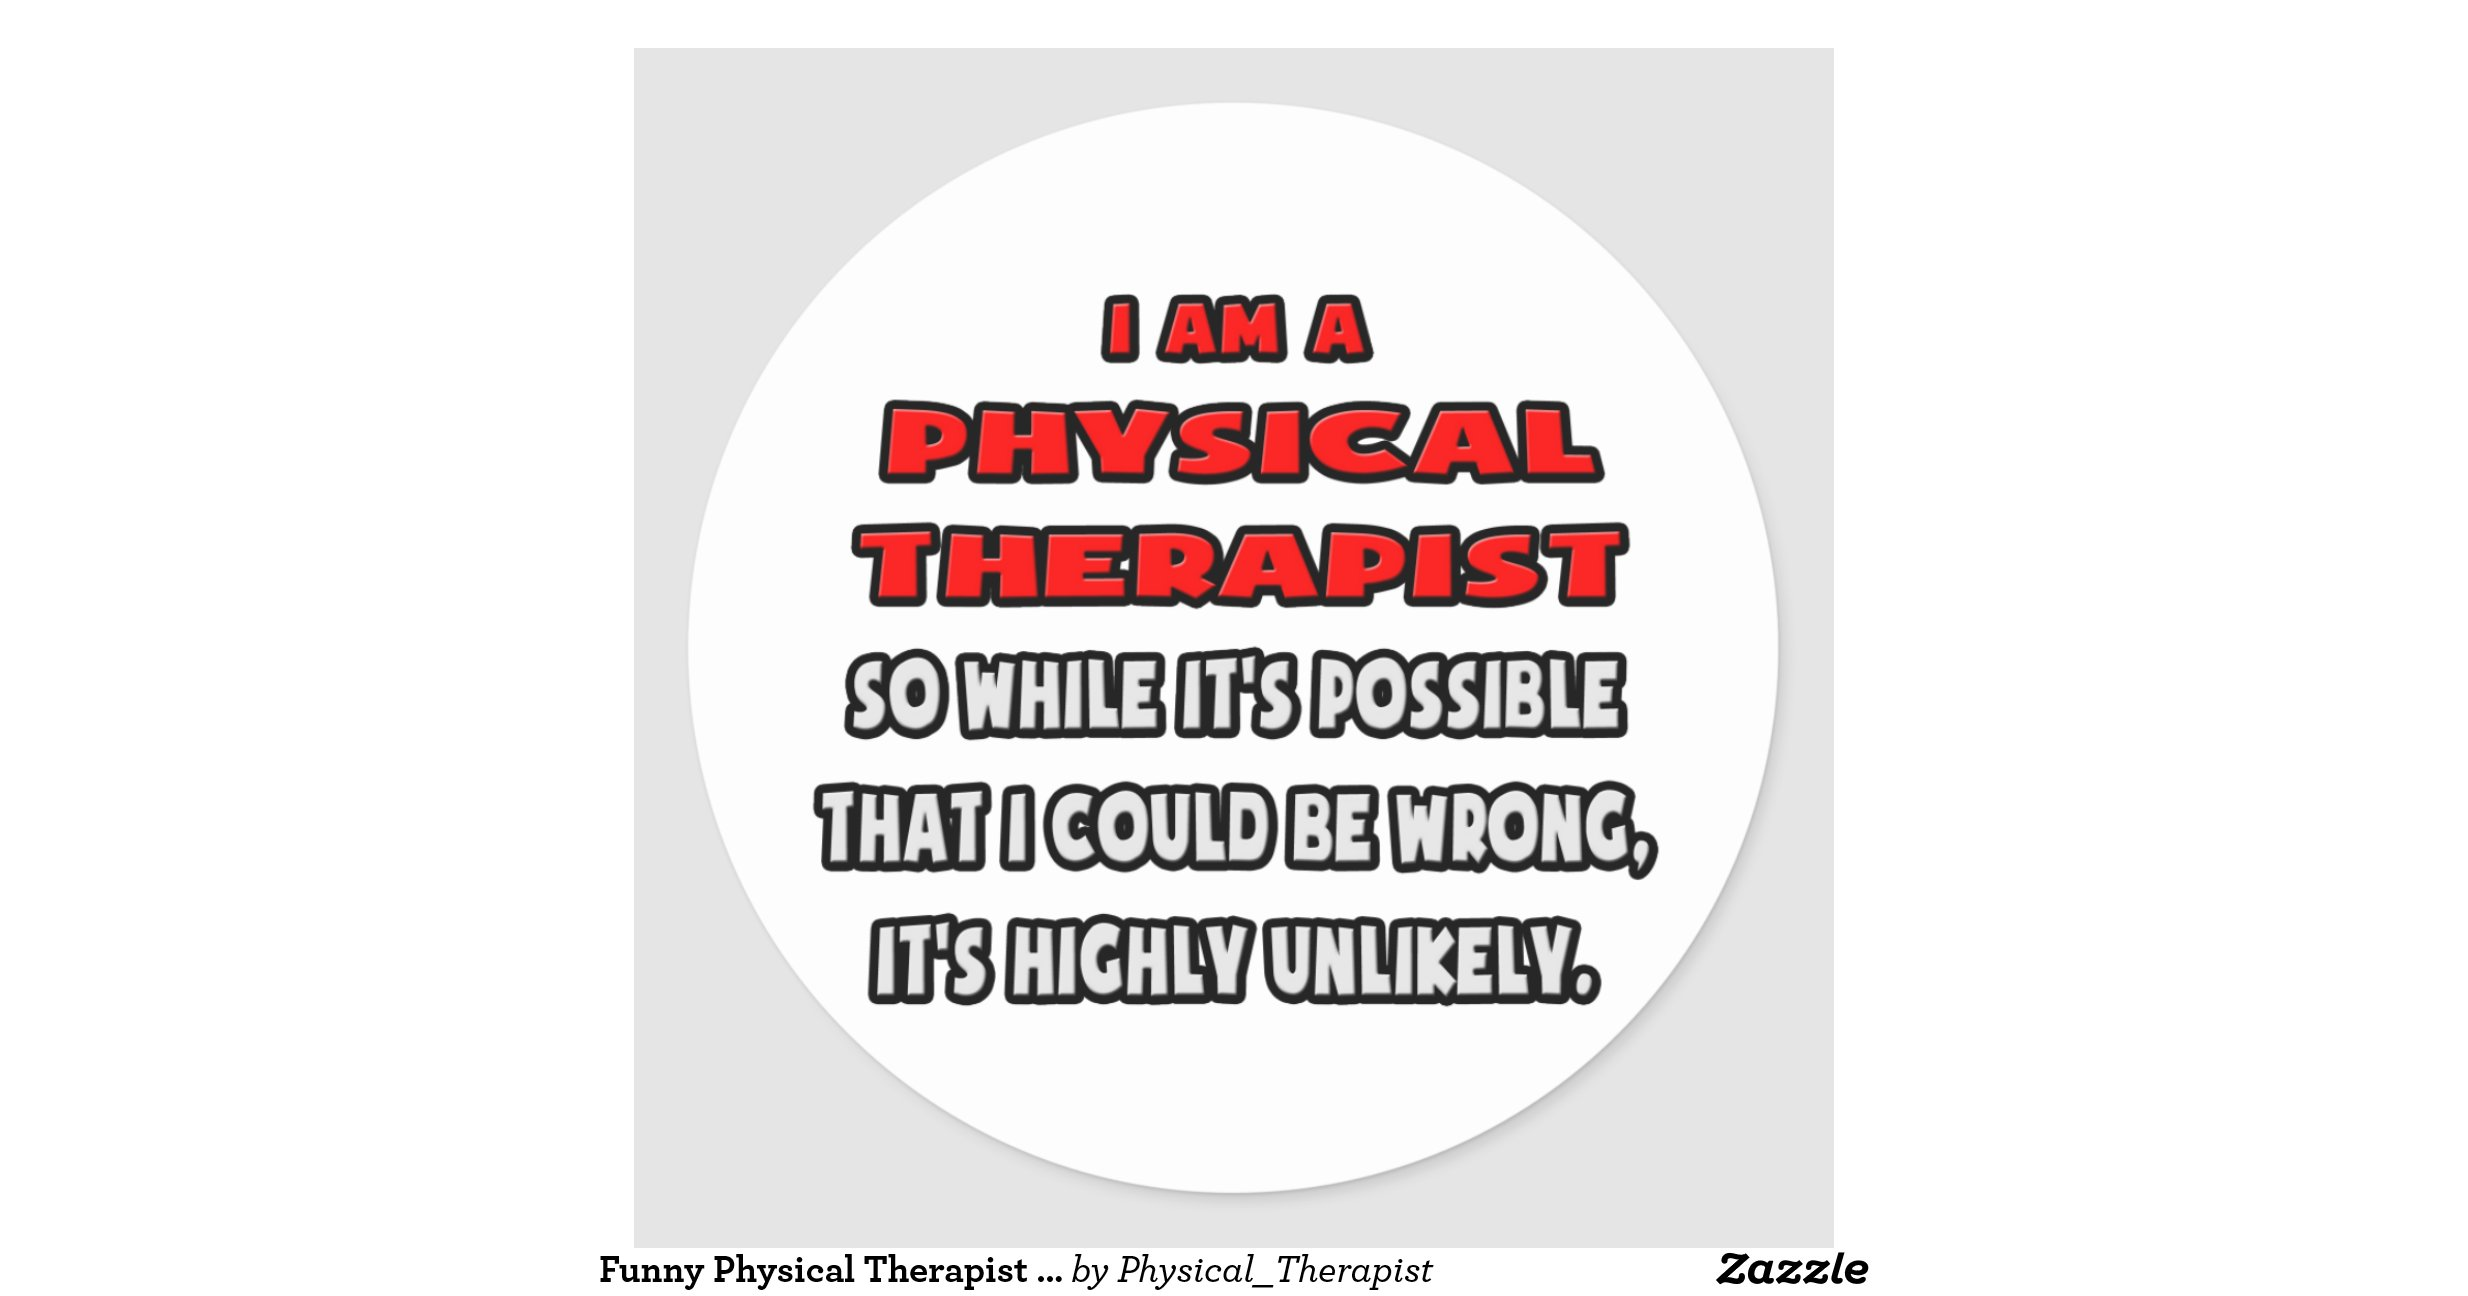 Funny Physical Therapist .. Highly Unlikely Round Sticker